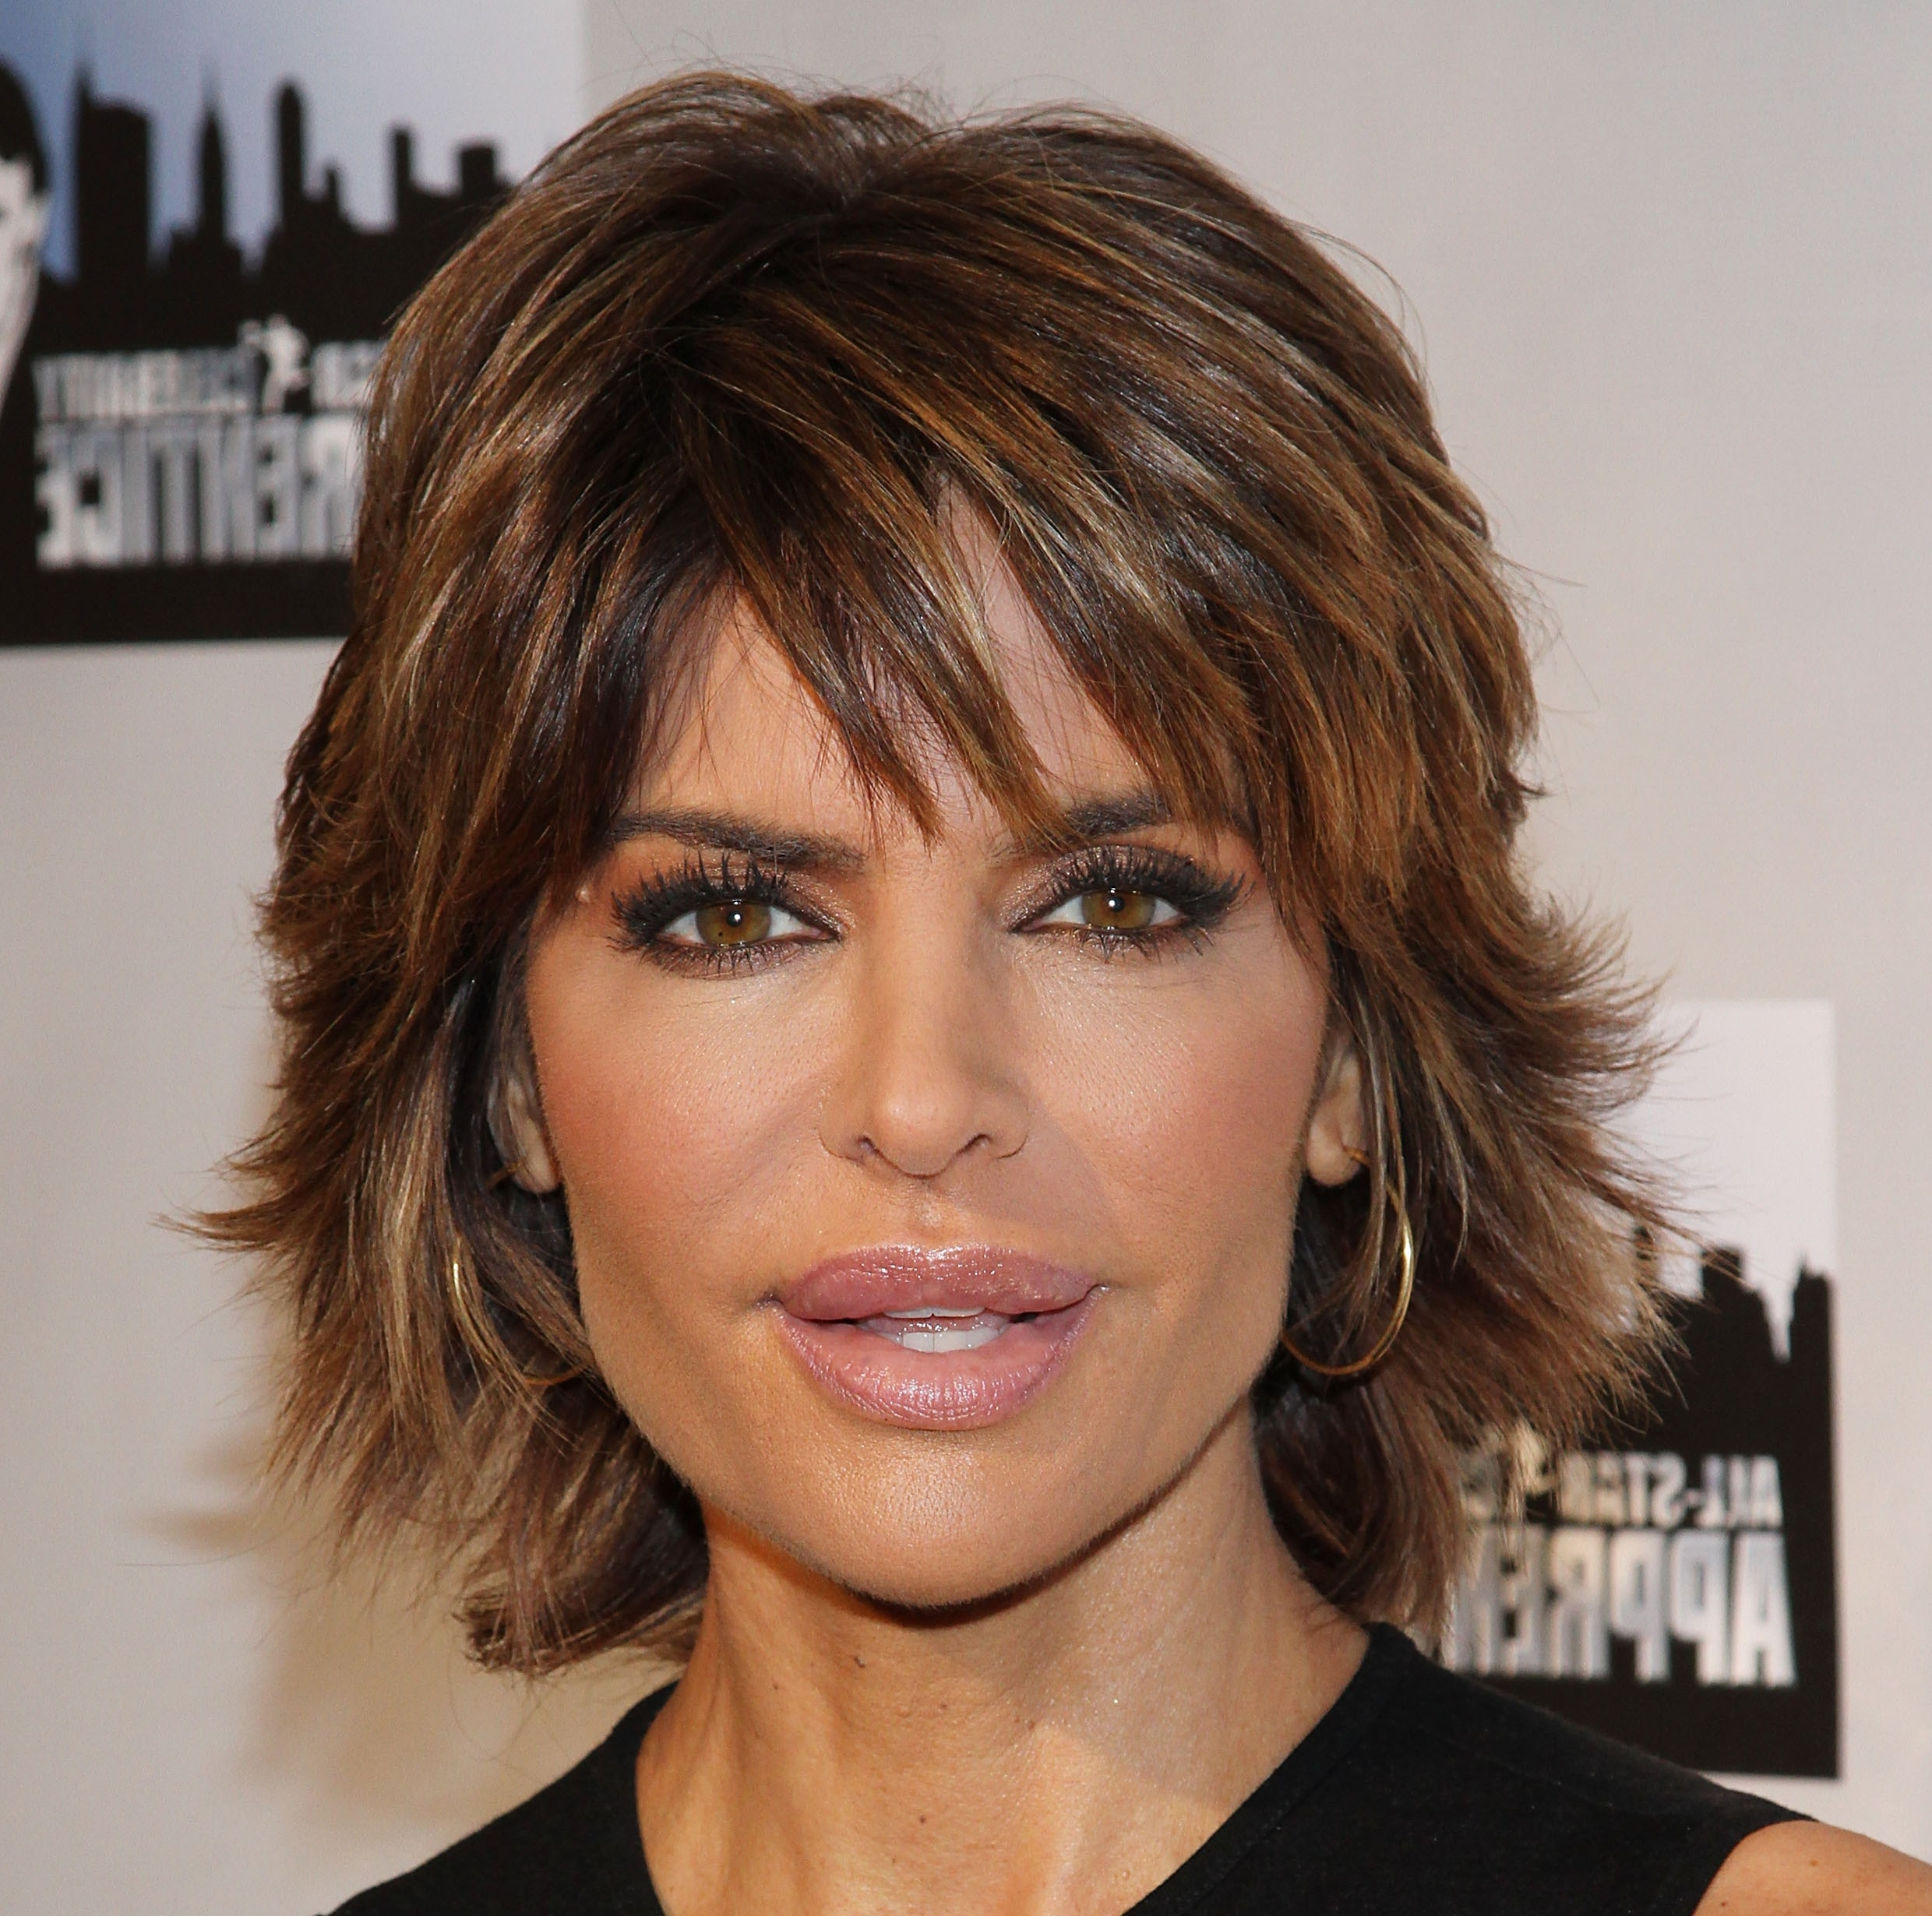 Photo Gallery Of Short Shag Haircuts For Women Viewing 2 Of 15 Photos